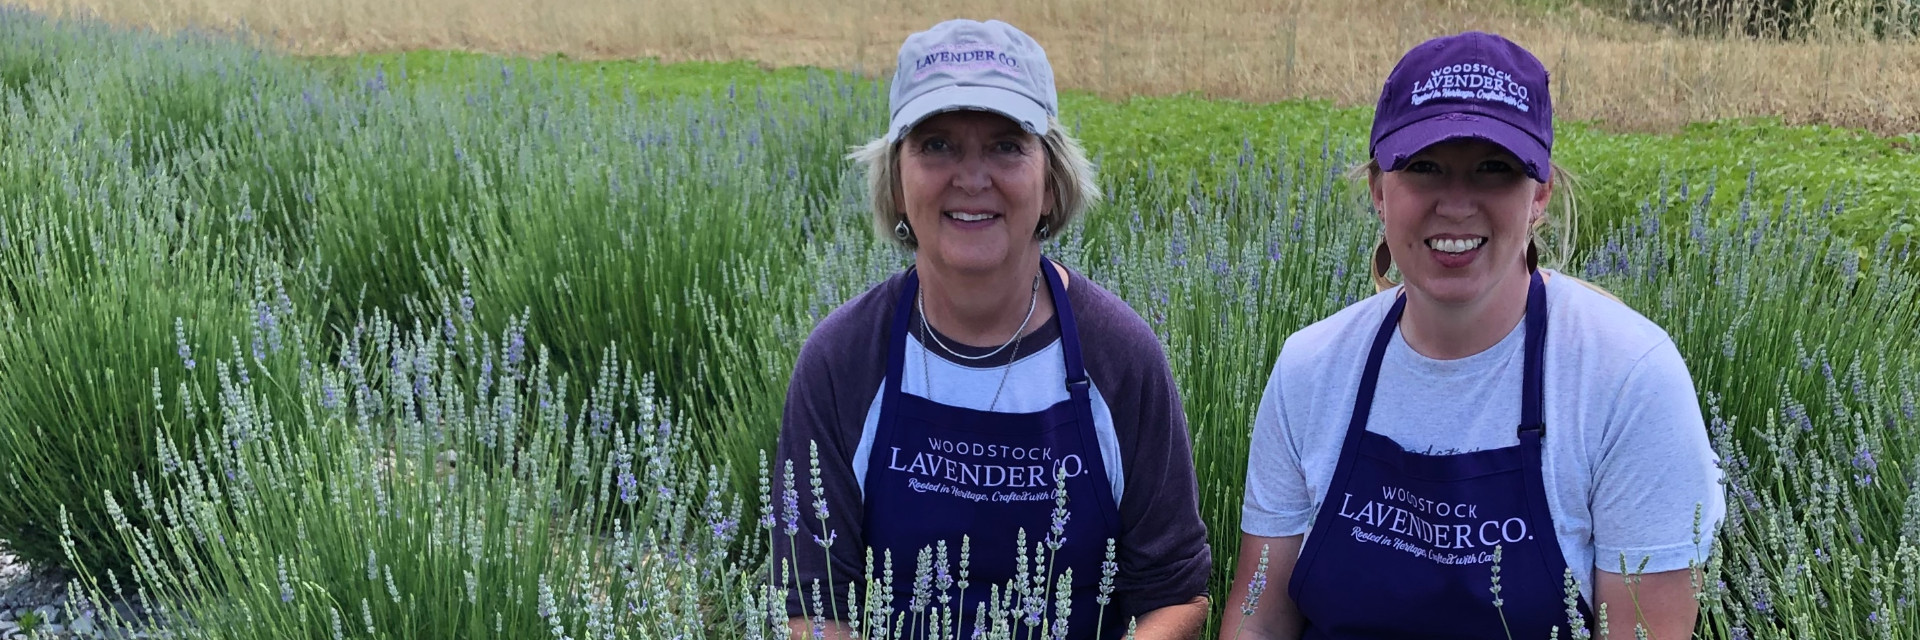 The Woodstock Lavender Co.A MotherDaughter Herb Farm Thrives In Rural Kentucky